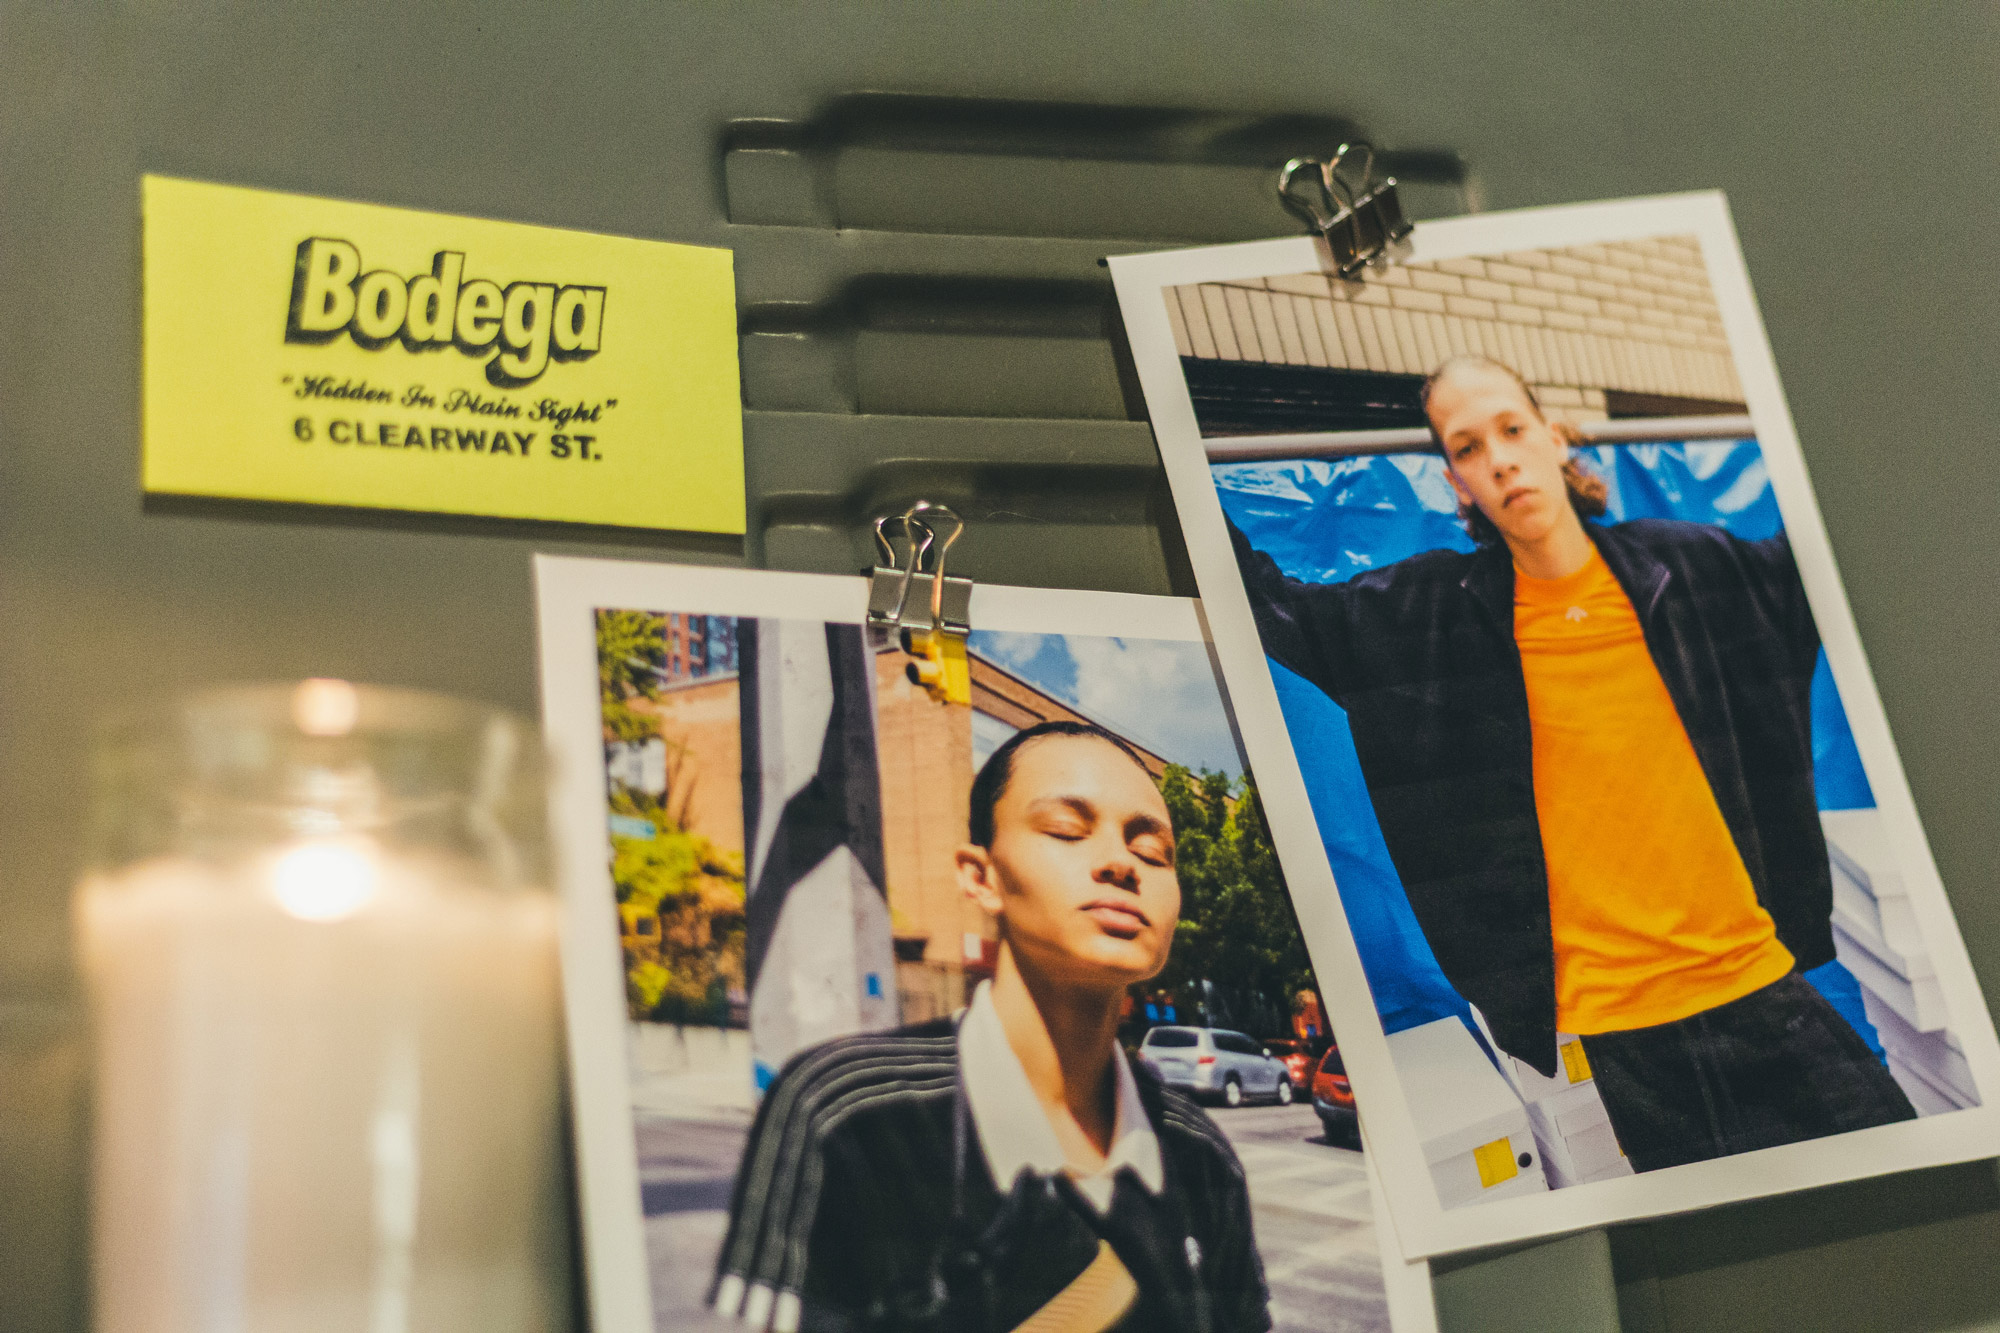 Archives: SERIES by Bodega presents Adidas Originals x Alexander Wang Drop 3.1 Recap